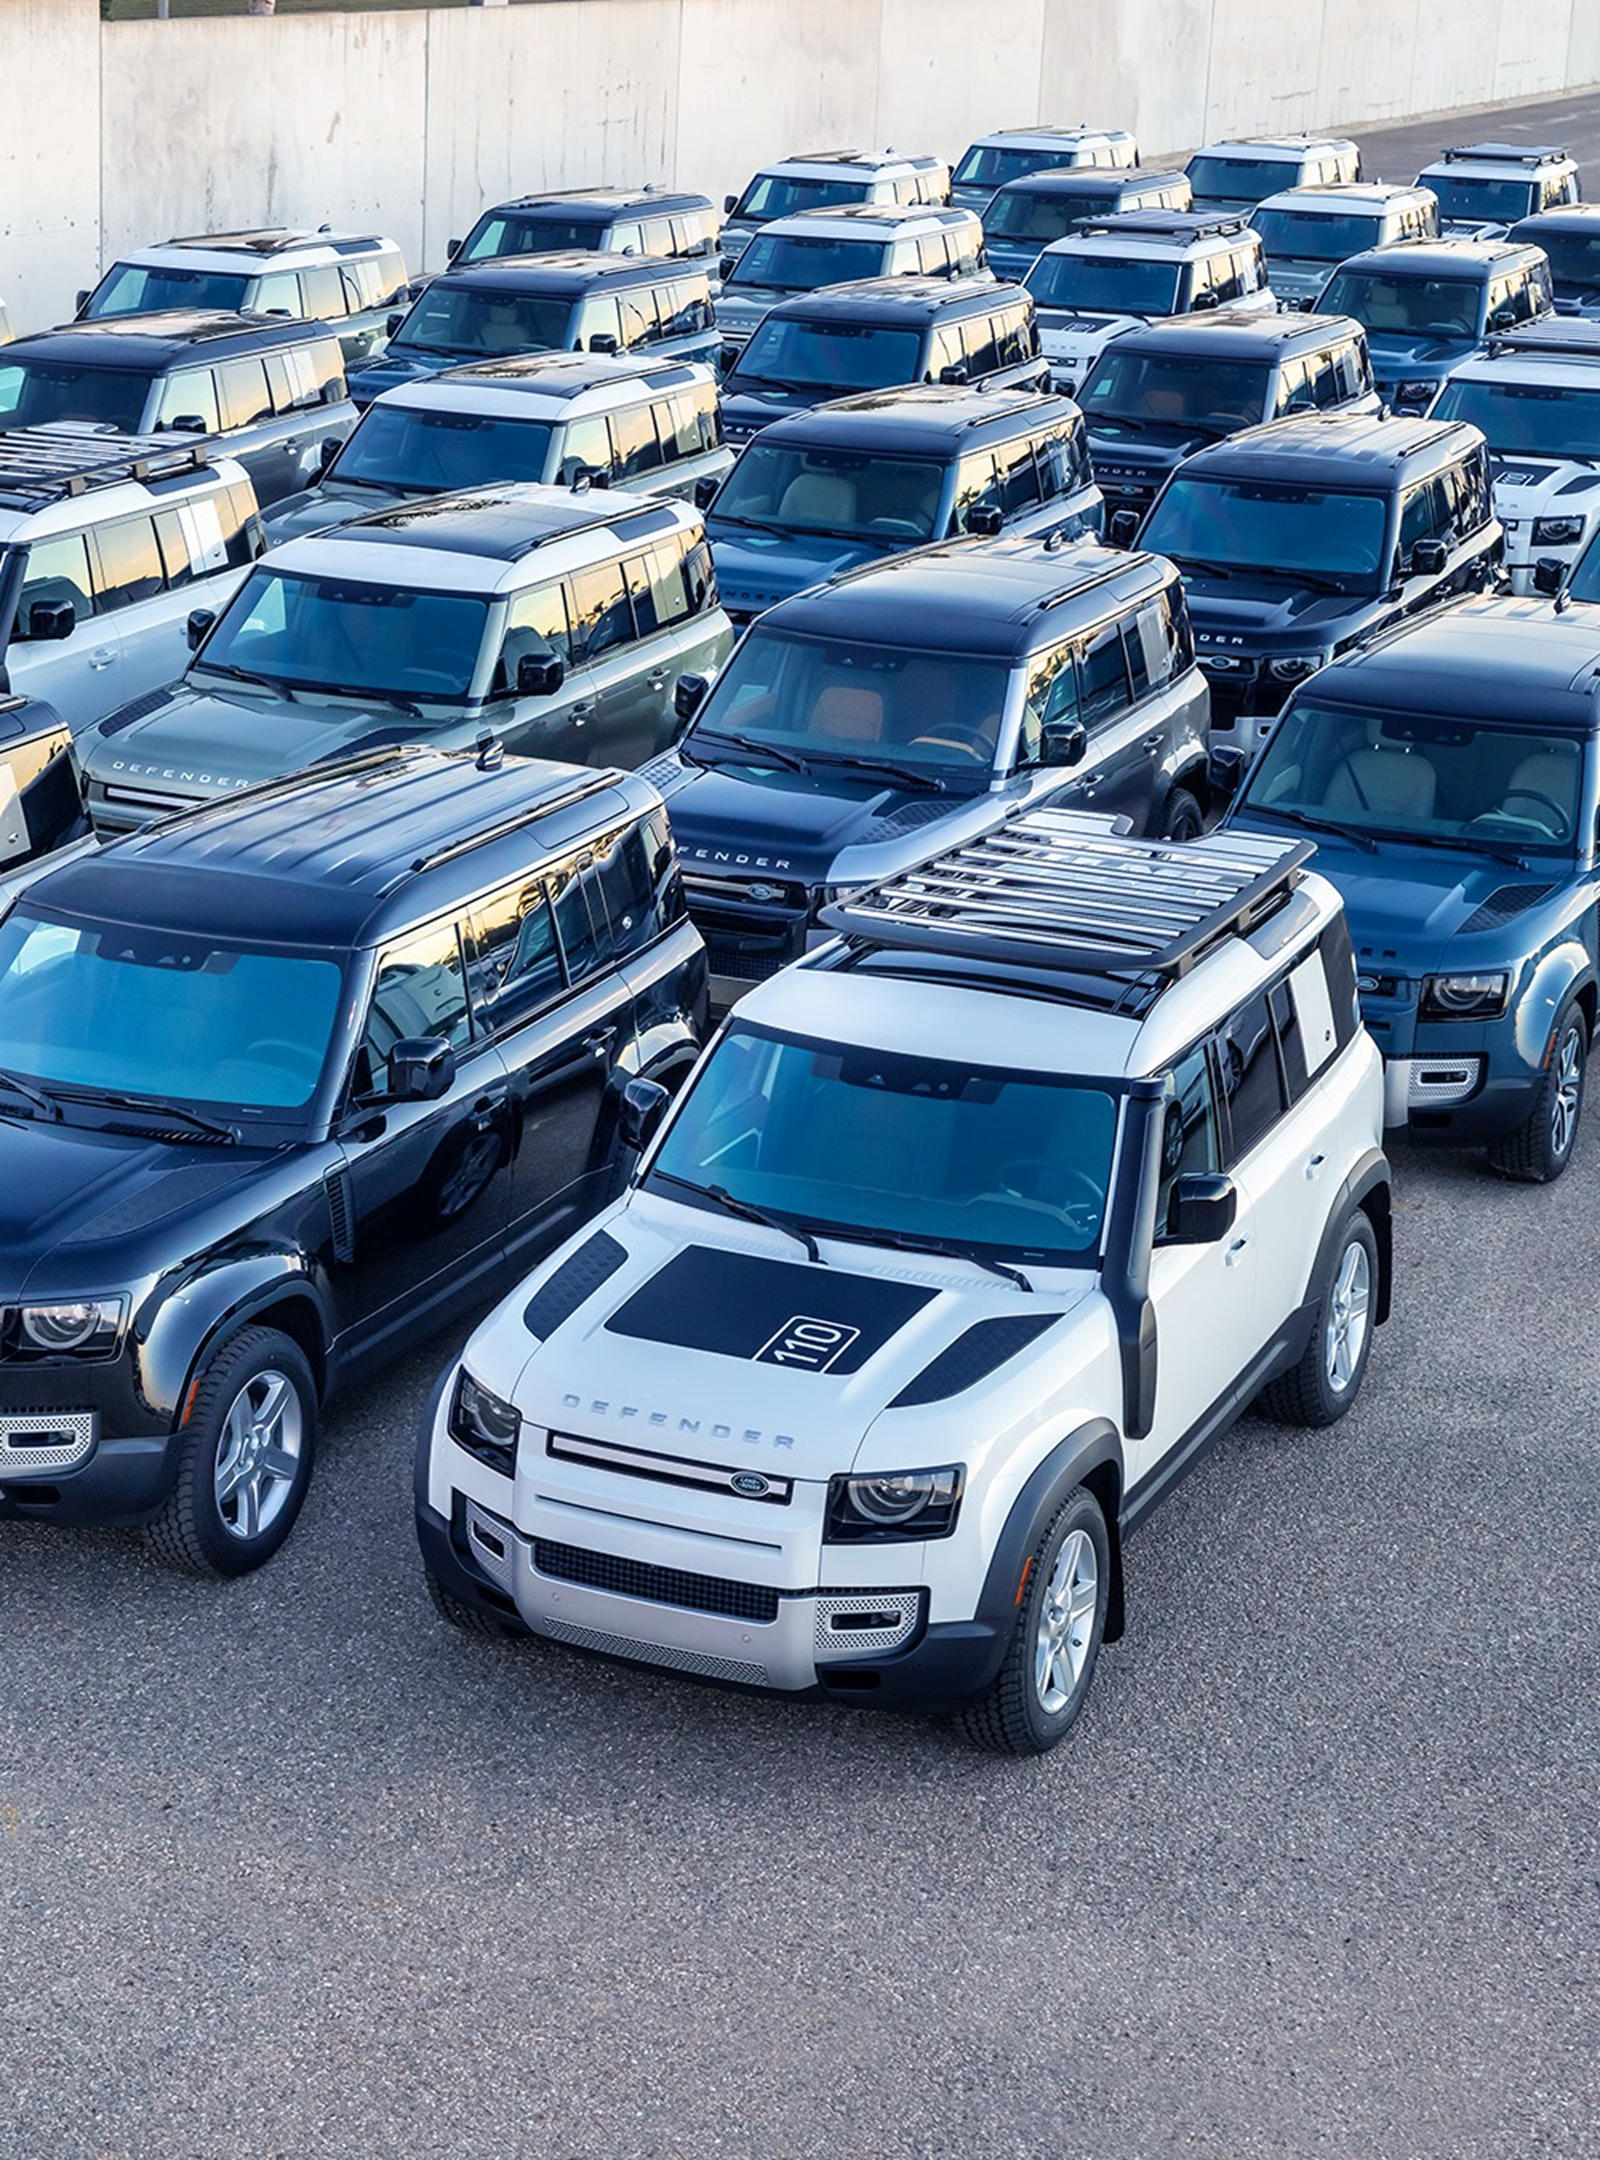 Latest Land Rover Defender Outdoor Adventure Unlike Any Other